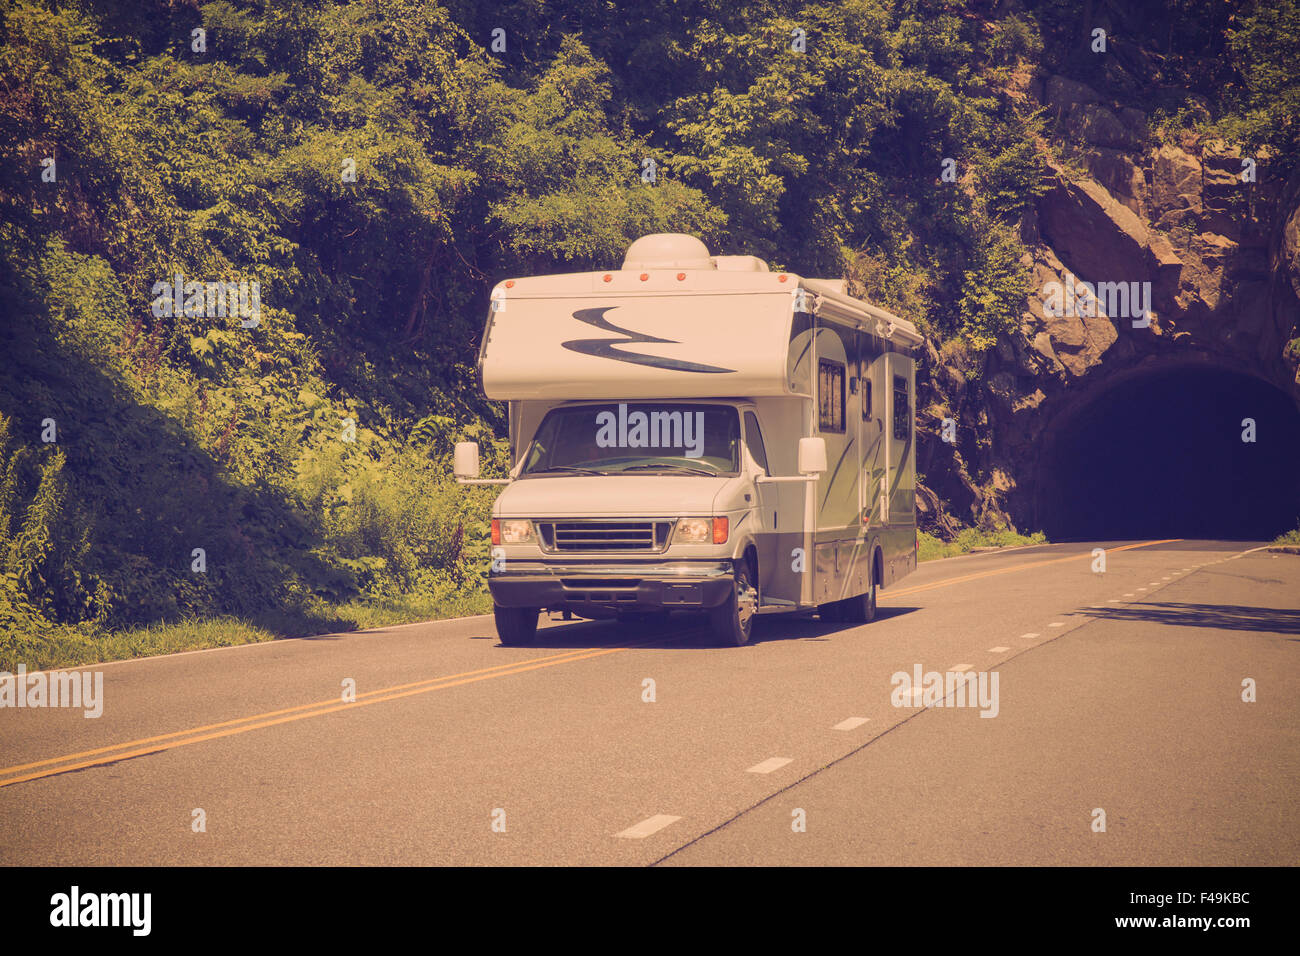 Vintage style image of recreational vehicle camper driving on highway - Stock Image